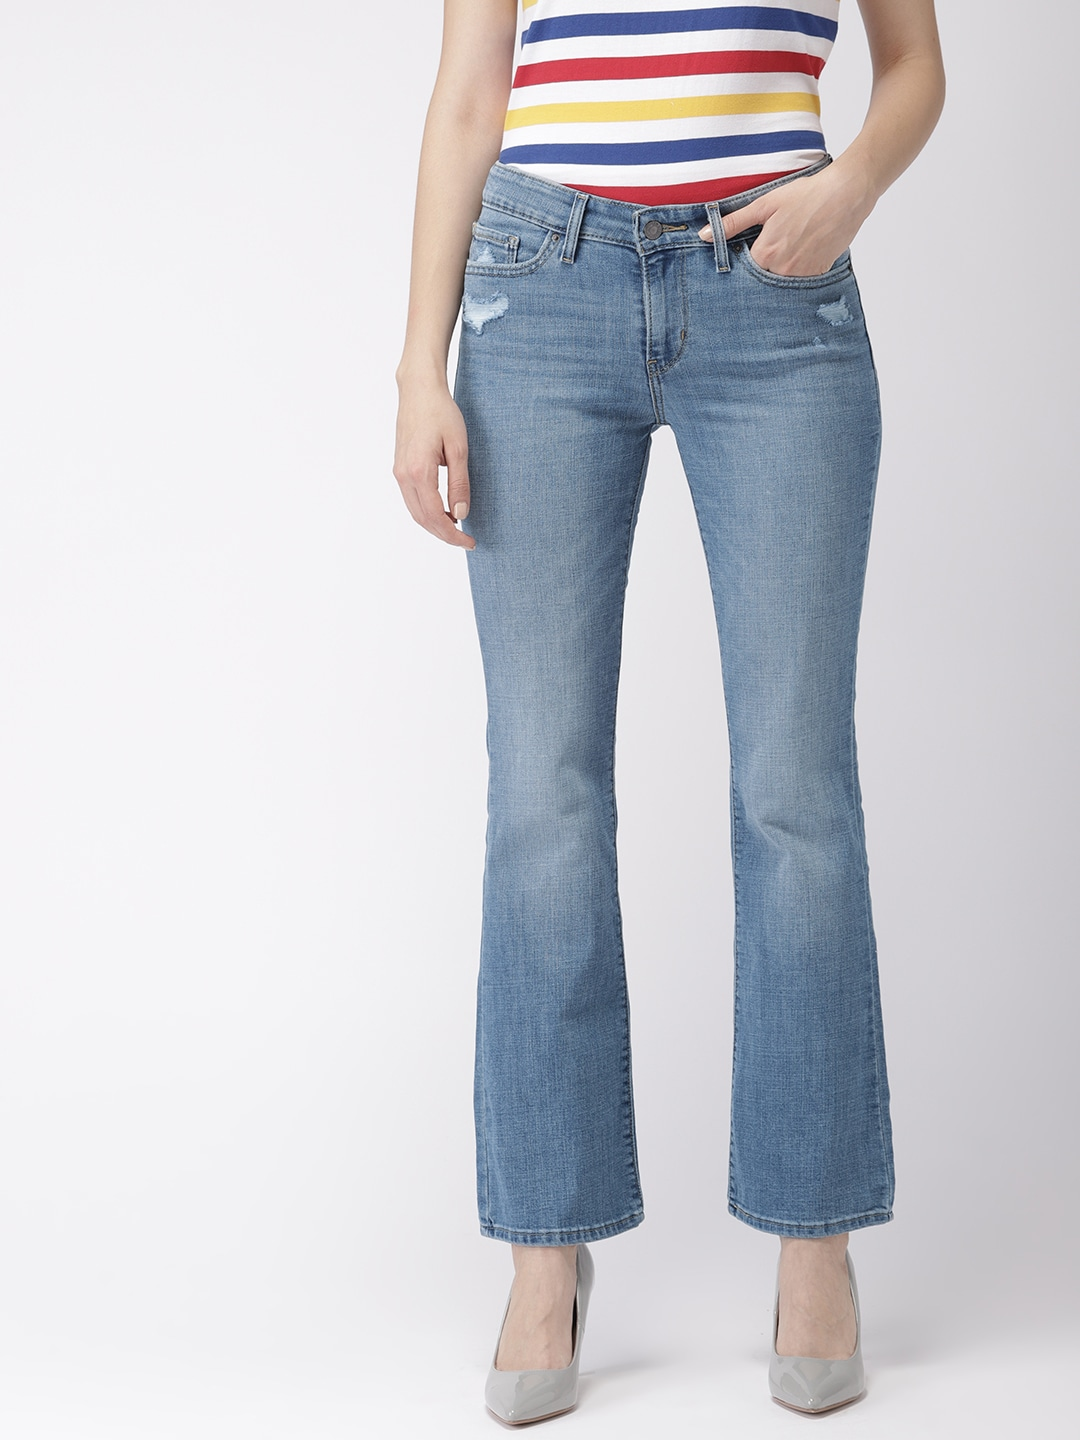 426f18a450c72 Levies Women Jeans - Buy Levies Women Jeans online in India